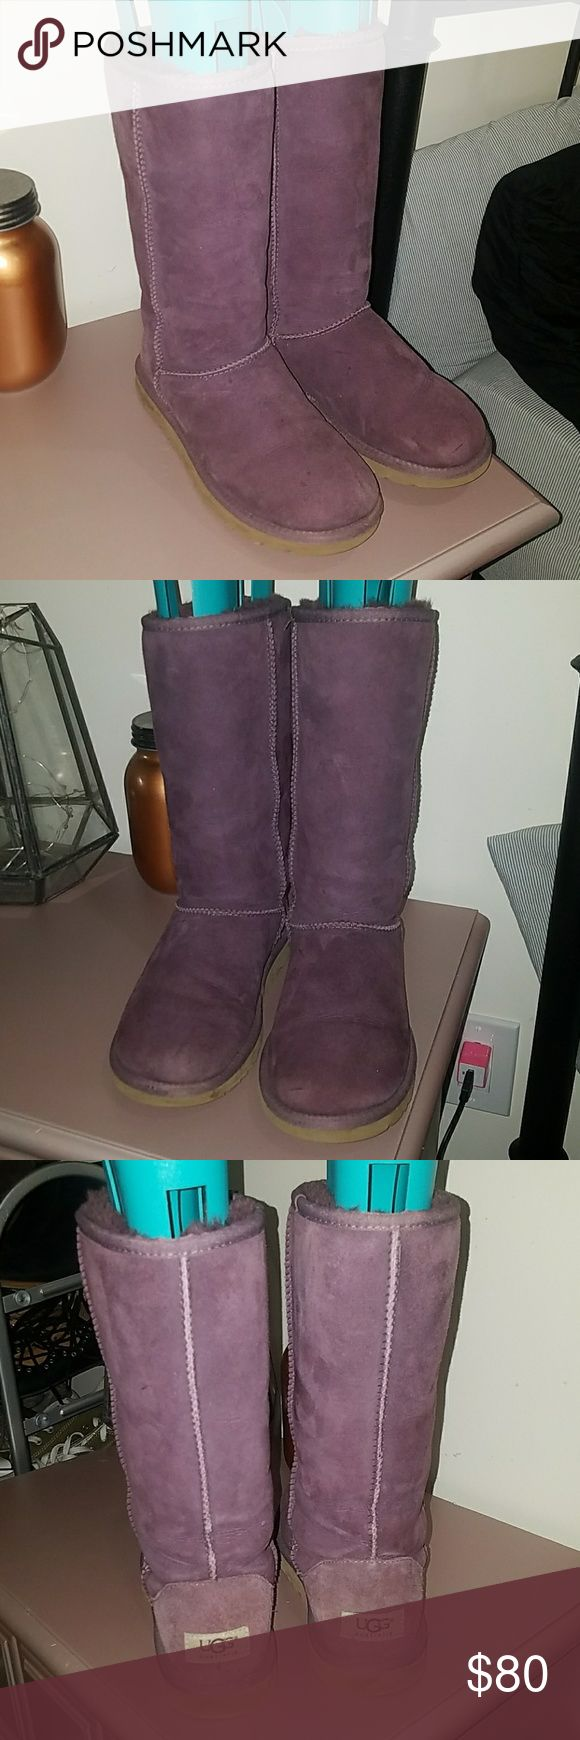 Tall purple uggs Tall purple uggs in great condition. UGG Shoes Ankle Boots & Booties